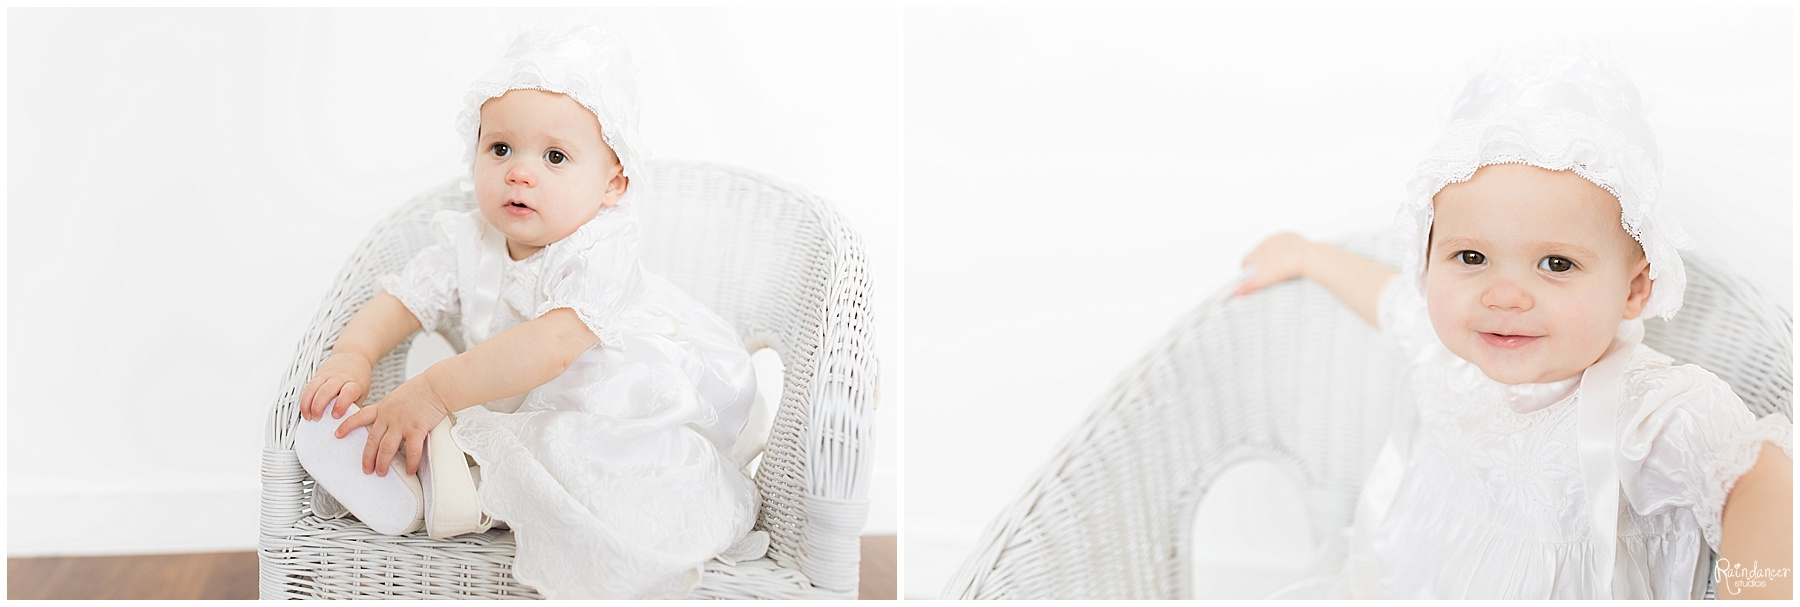 One year old baby girl in white chair and white hat by Raindancer Studios Indianapolis Children Photographer Jill Howell